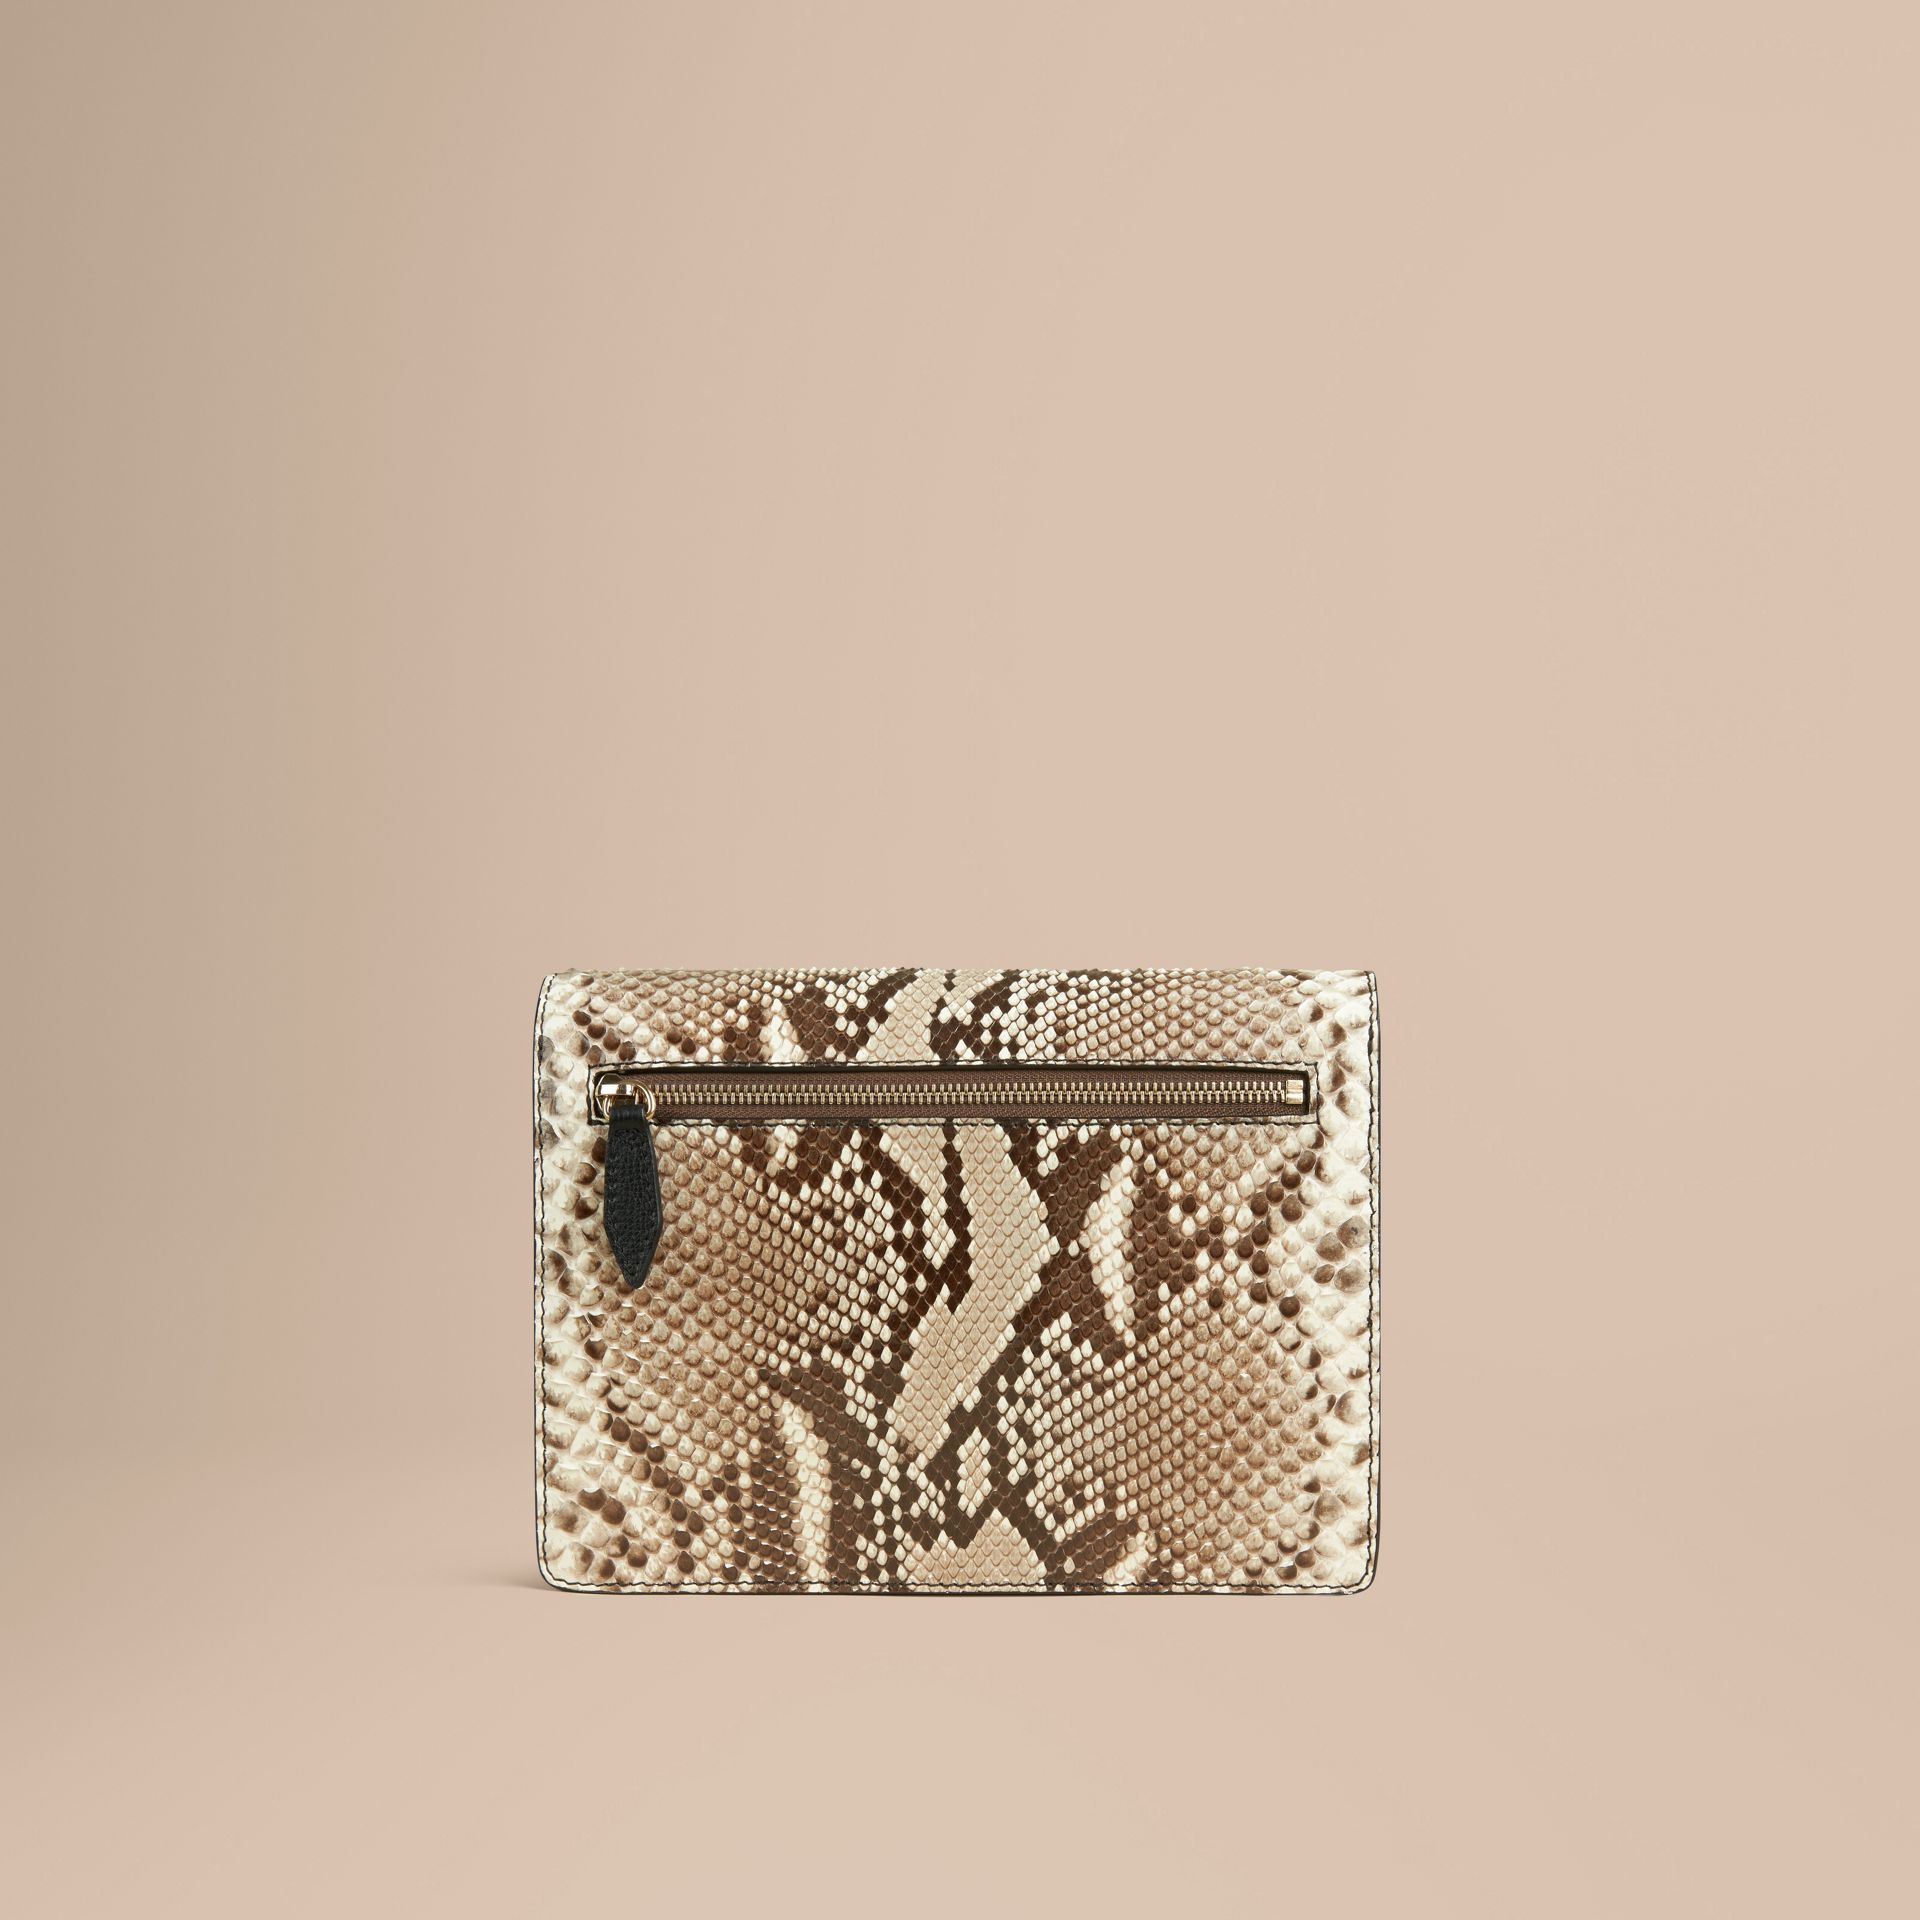 Small Python Crossbody Bag in Natural - Women | Burberry Hong Kong - gallery image 4